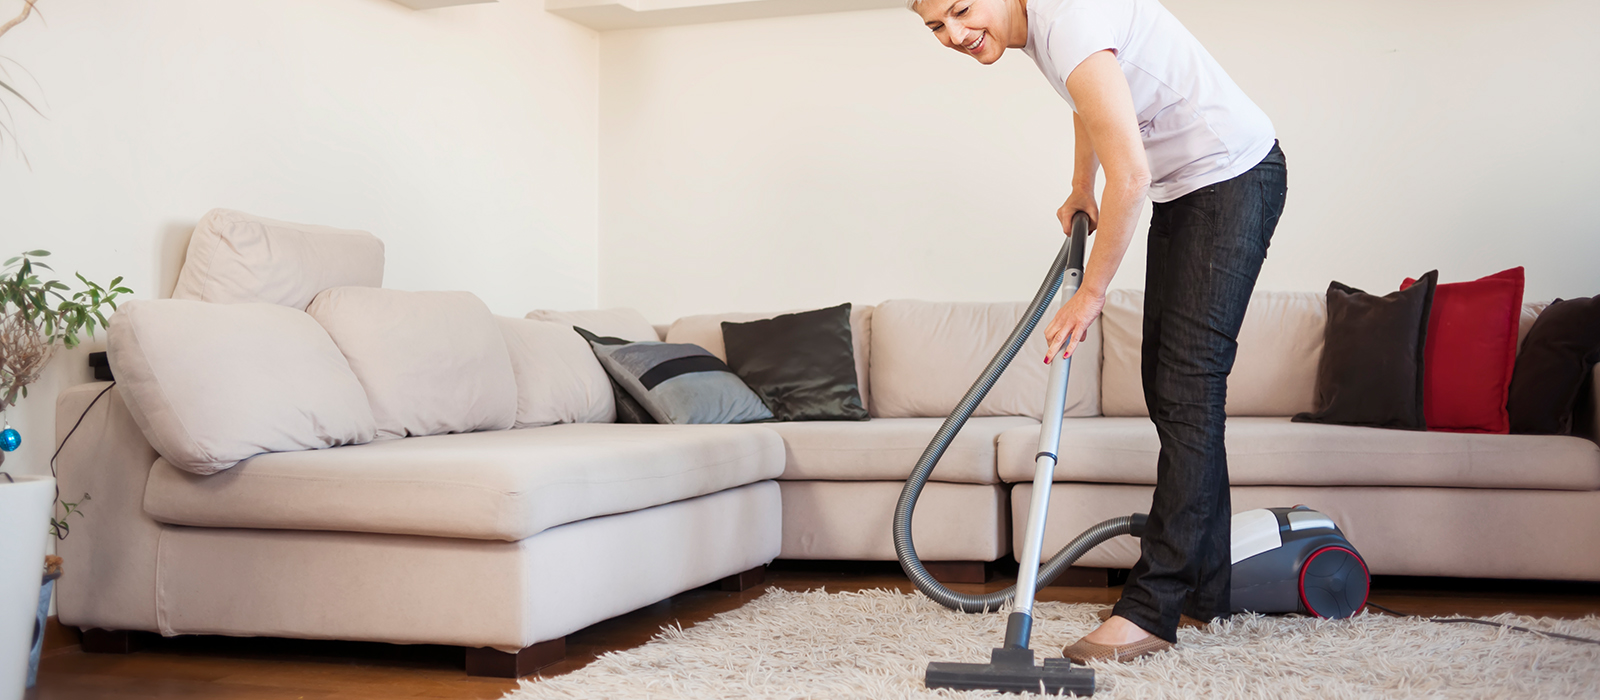 Old fashioned house cleaning House Cleaning, Maid Service Home Cleaning